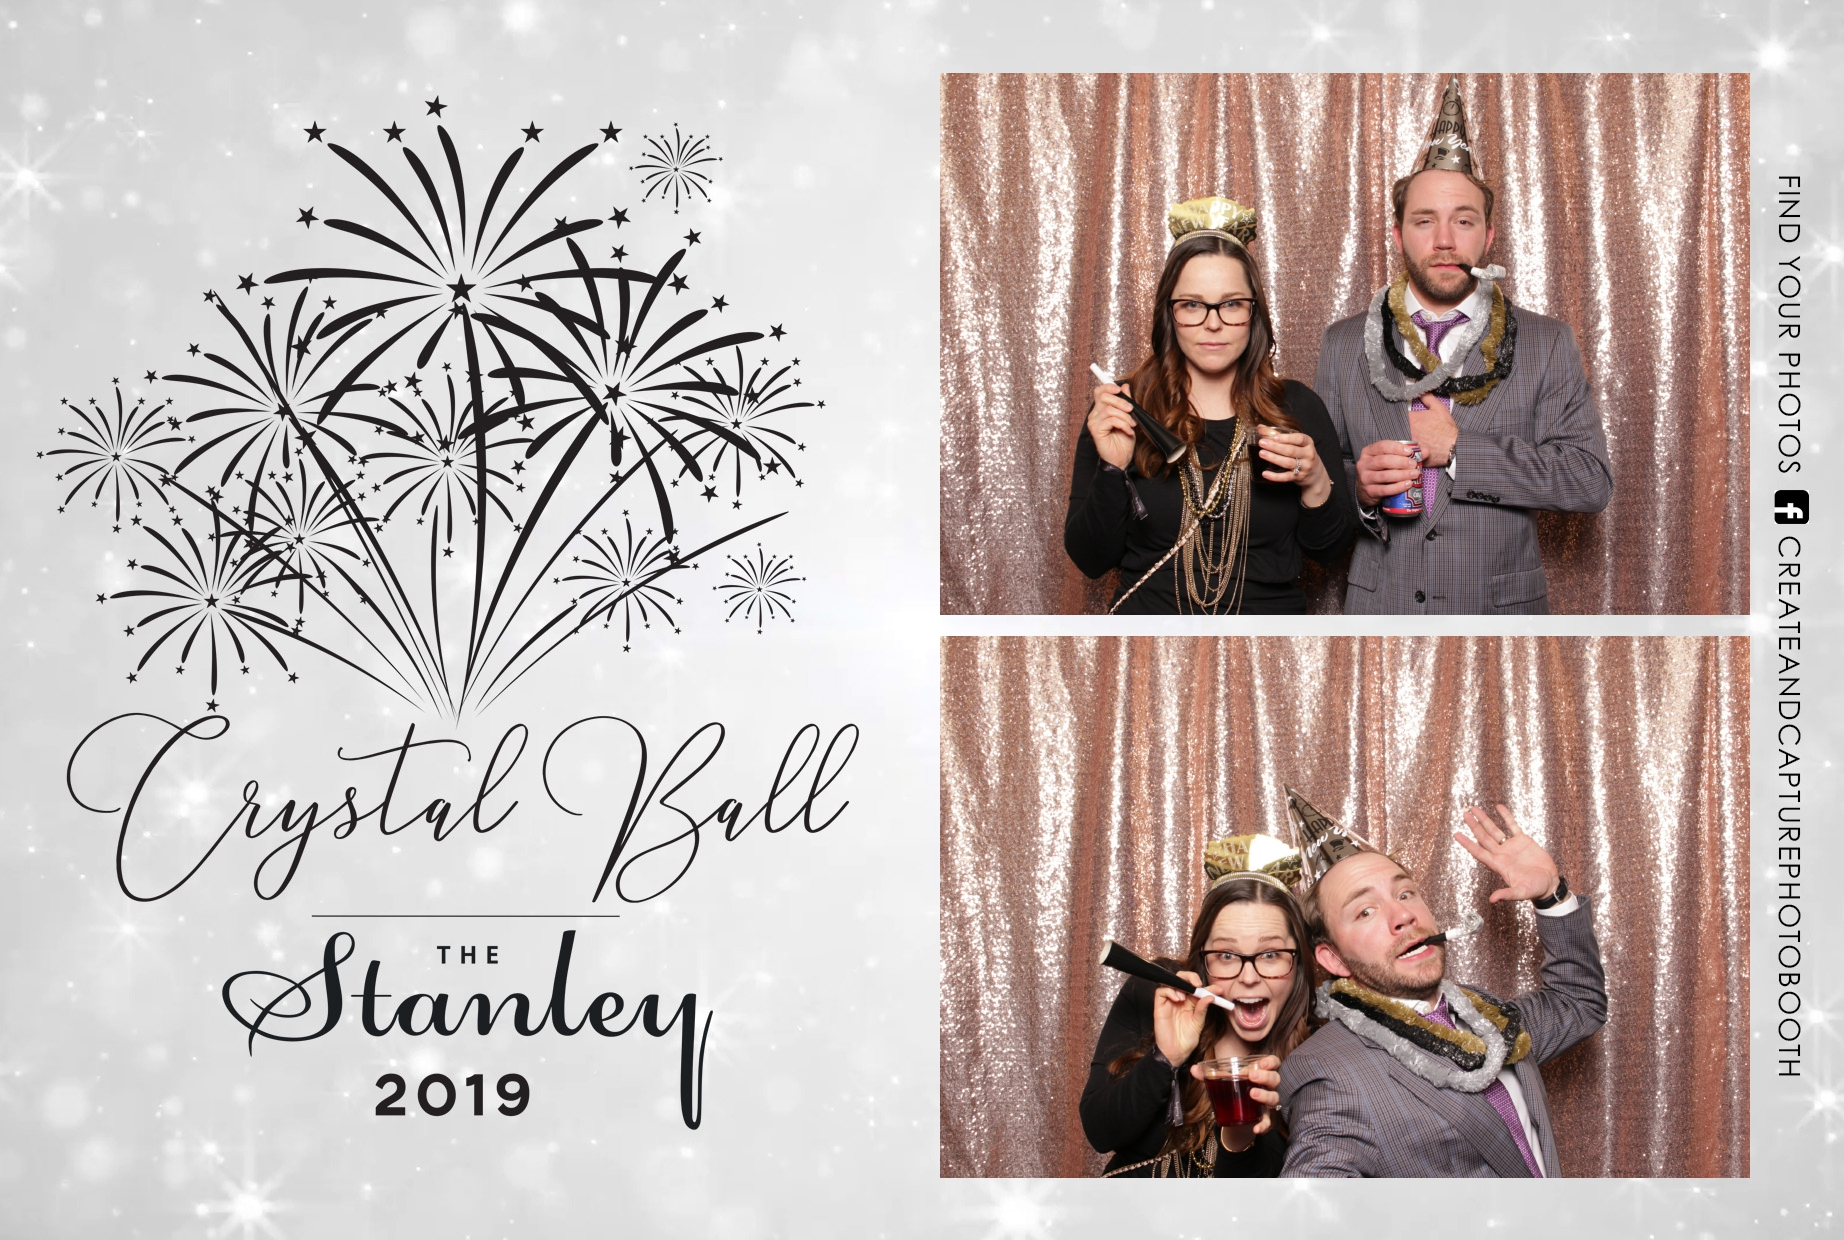 the stanley hotel new year's eve crystal ball, sparkly rose gold backdrop